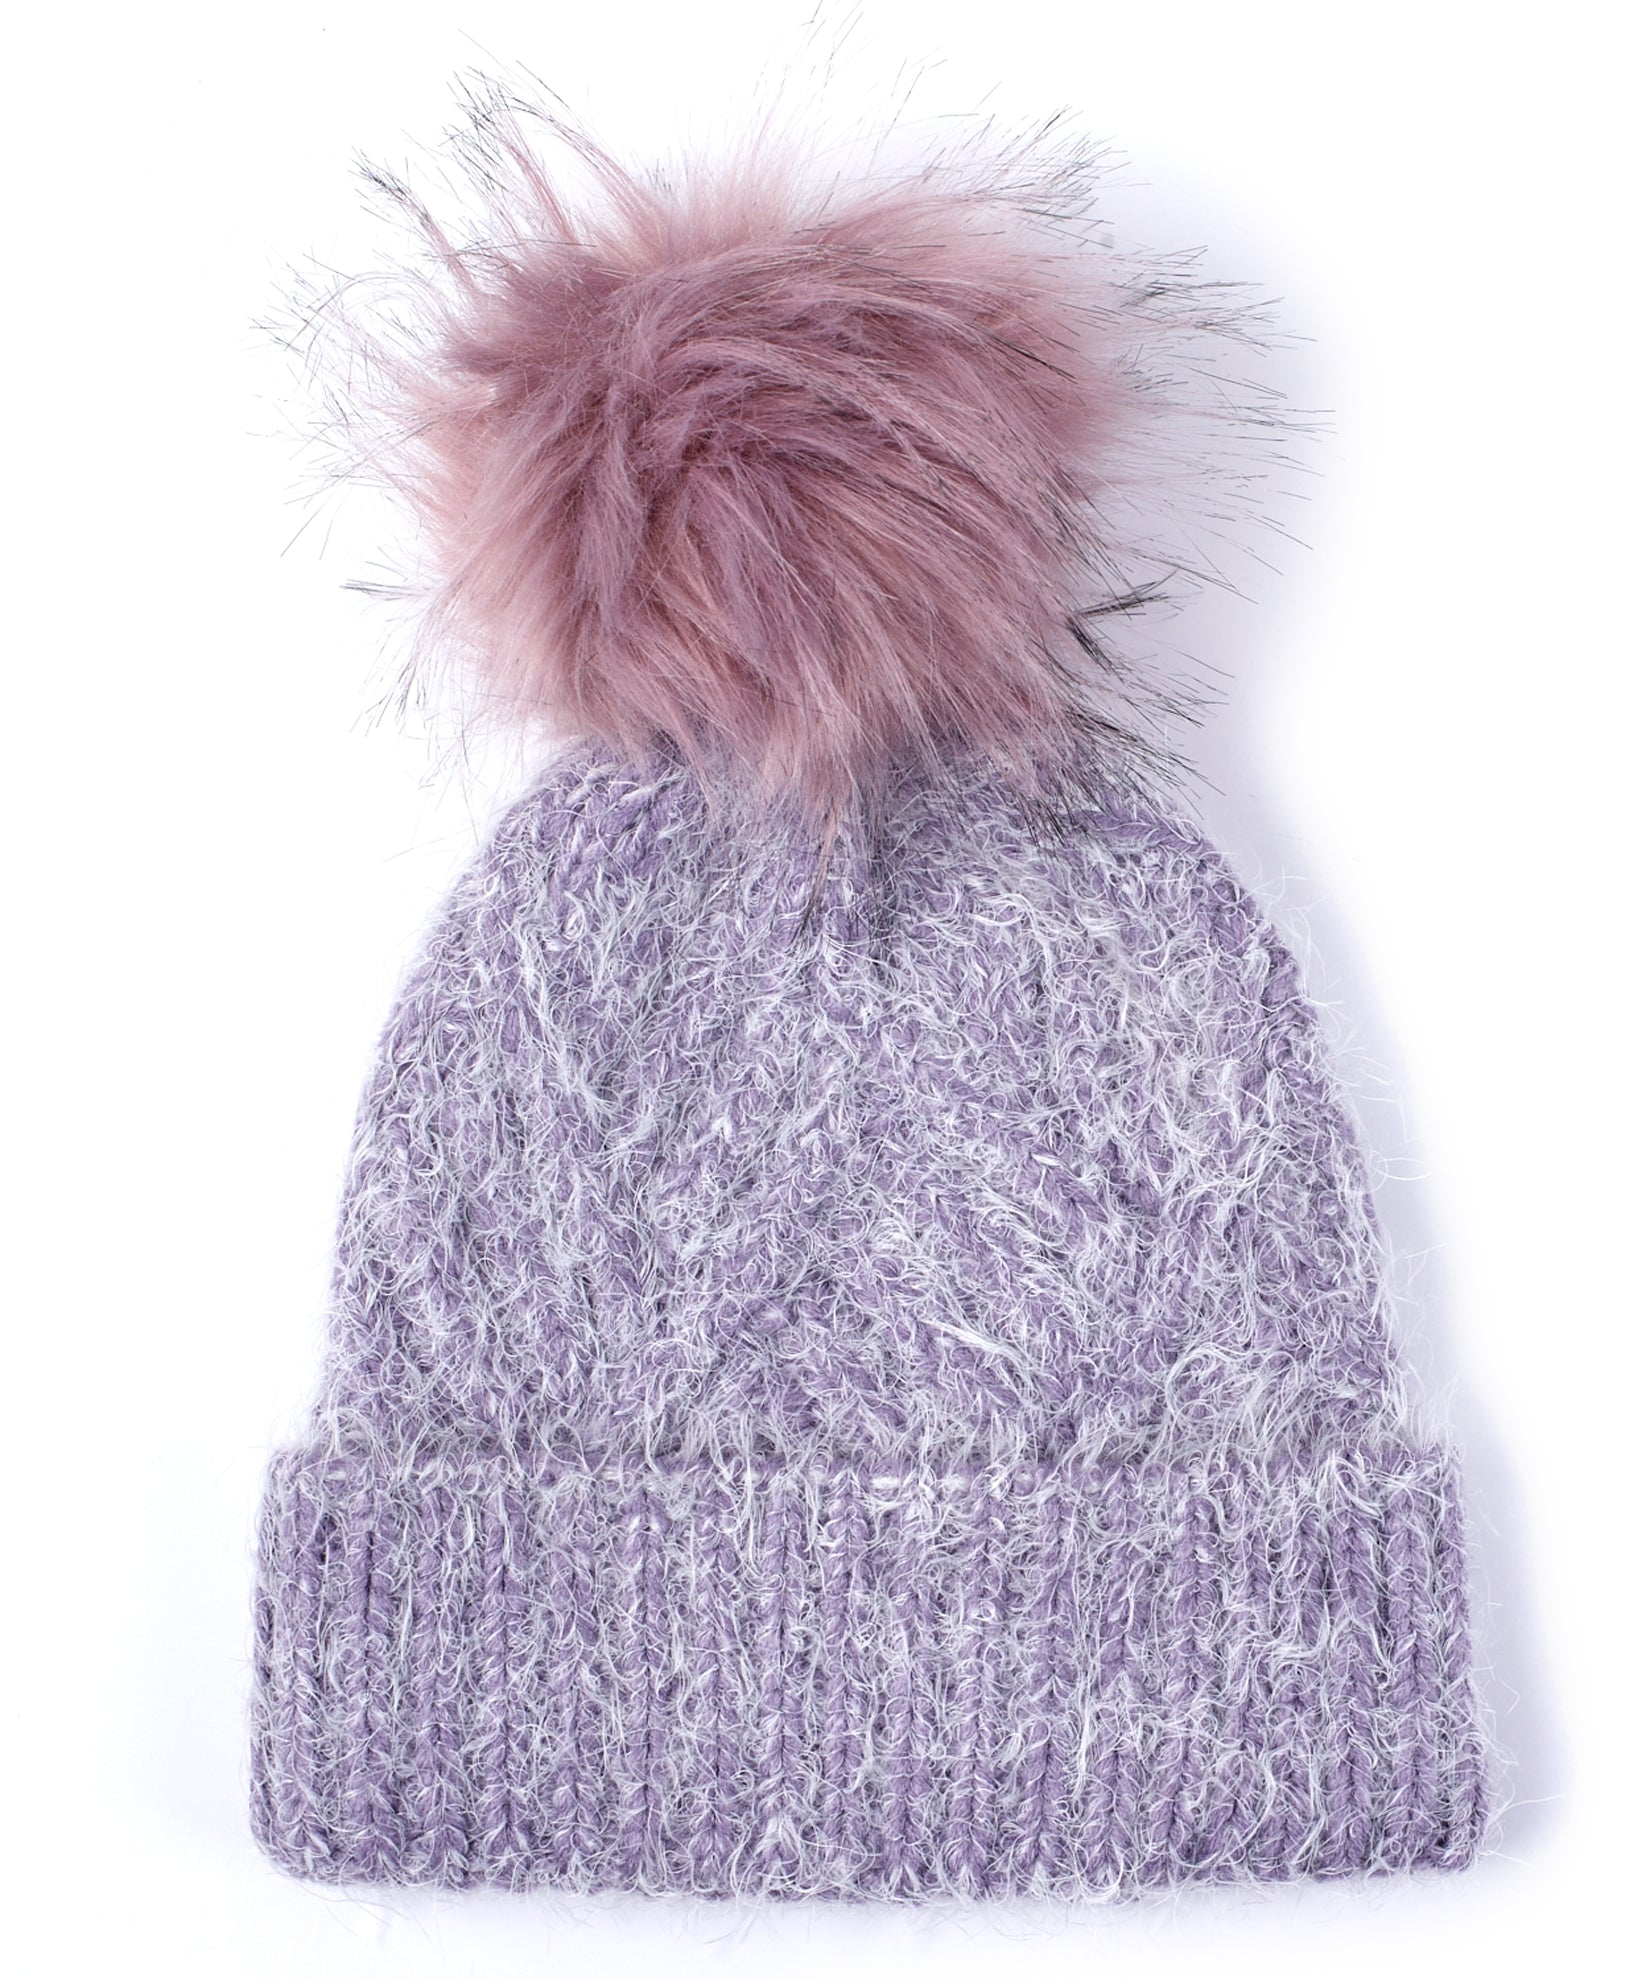 Smoked Lilac - Fuzzy Cable Hat With Pom